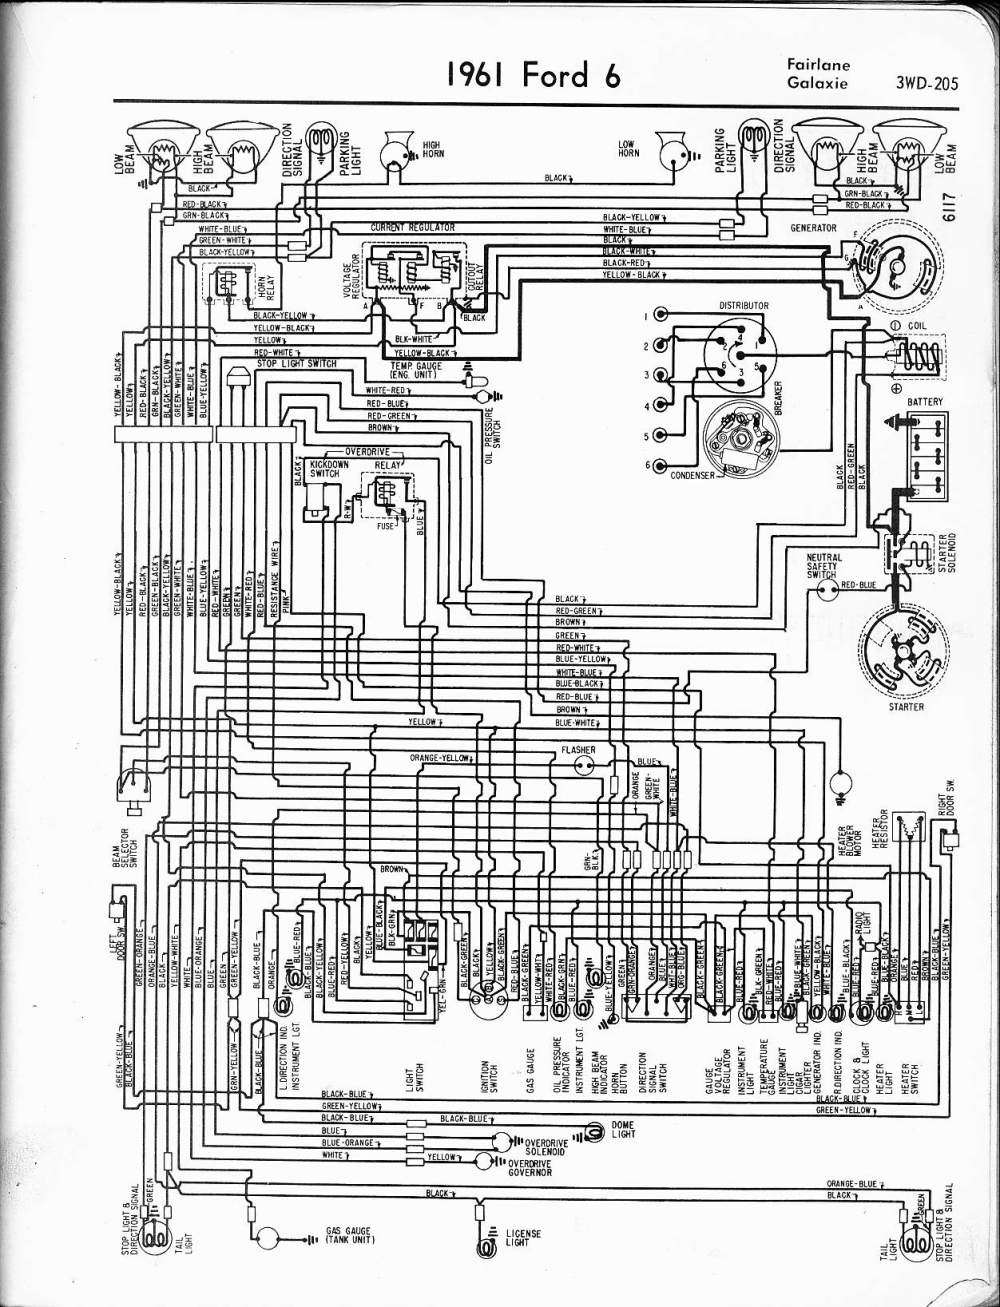 medium resolution of 1965 ford f100 ignition switch wiring diagram detailed schematics 1977 f100 wiring diagram 1980 f100 wiring